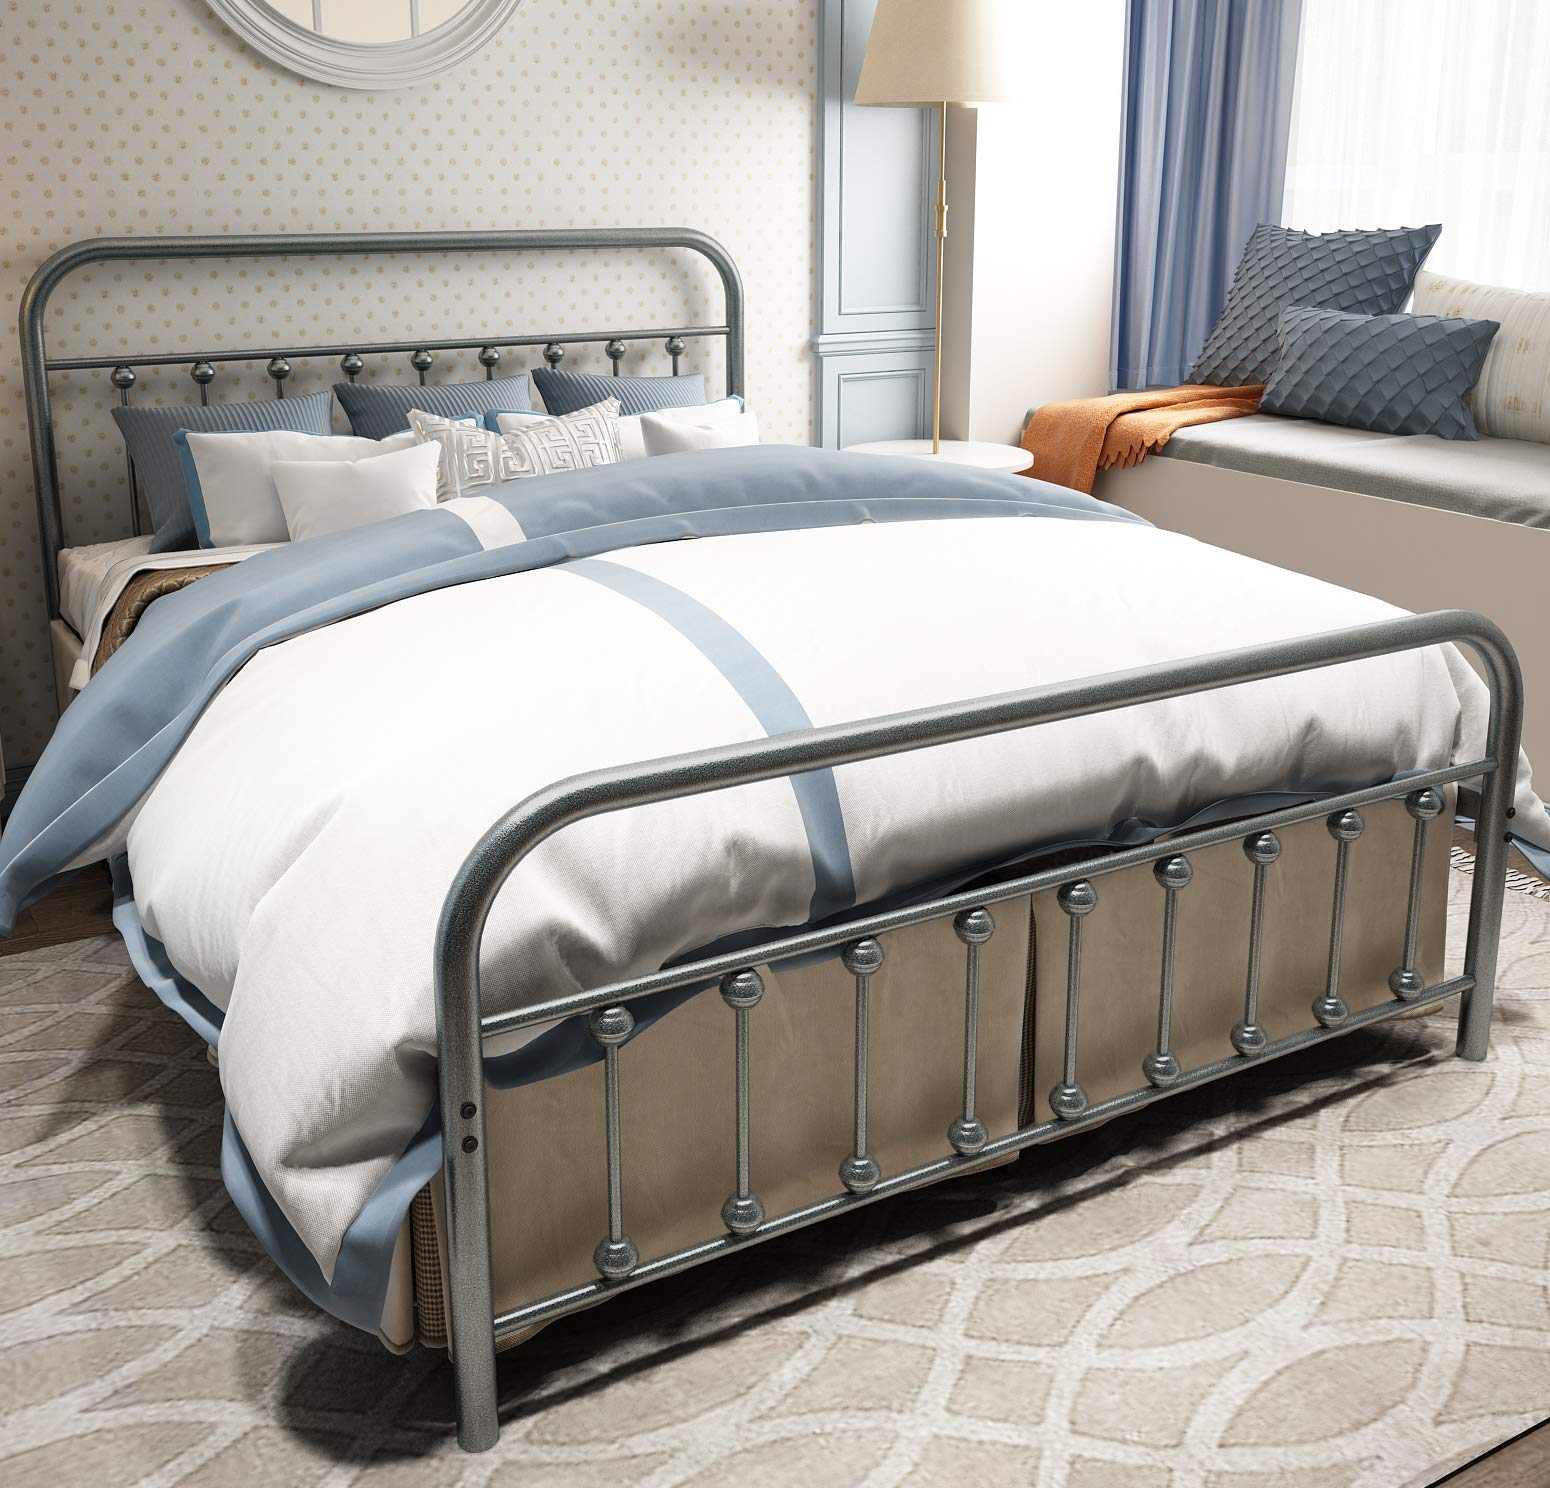 TEMMER Metal Bed Frame Queen Size with Headboard and Footboard Single Platform Mattress Base,Metal Tube and Iron-Art Bed(Queen,Gray Silver) by TEMMER